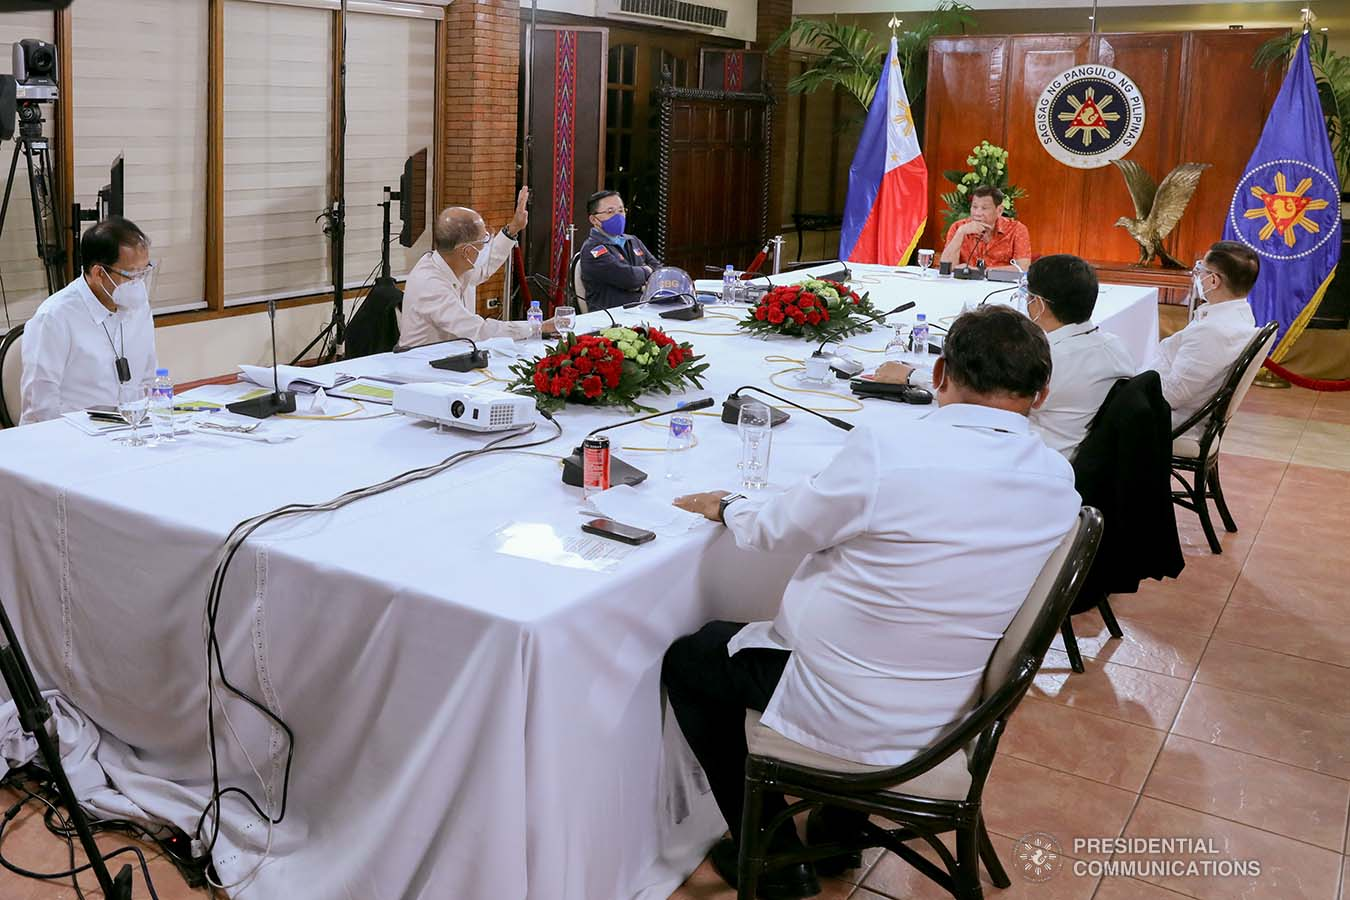 President Rodrigo Roa Duterte presides over a meeting with the Inter-Agency Task Force on the Emerging Infectious Diseases (IATF-EID) core members prior to his talk to the people at the Malacañang Golf (Malago) Clubhouse in Malacañang Park, Manila on October 19, 2020. ROBINSON NIÑAL/PRESIDENTIAL PHOTO